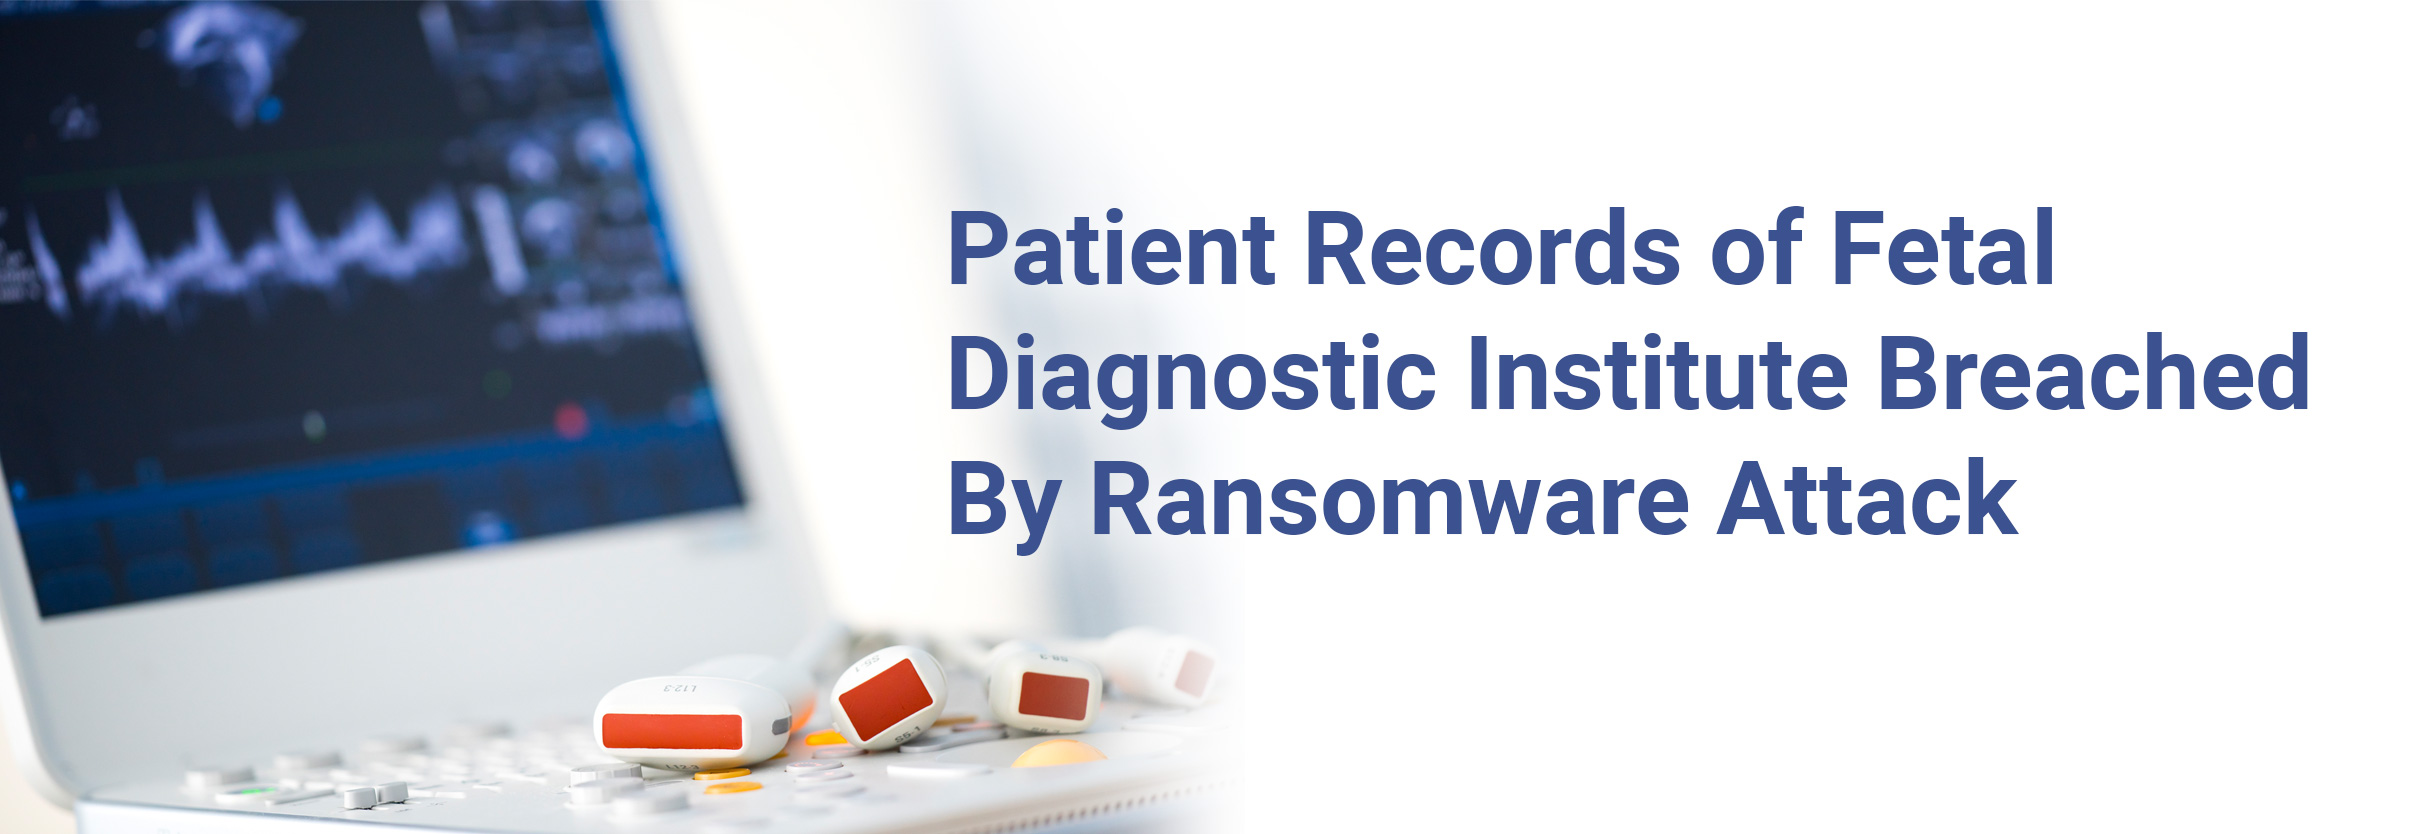 Patient Records of Fetal Diagnostic Institute Breached By Ransomware Attack